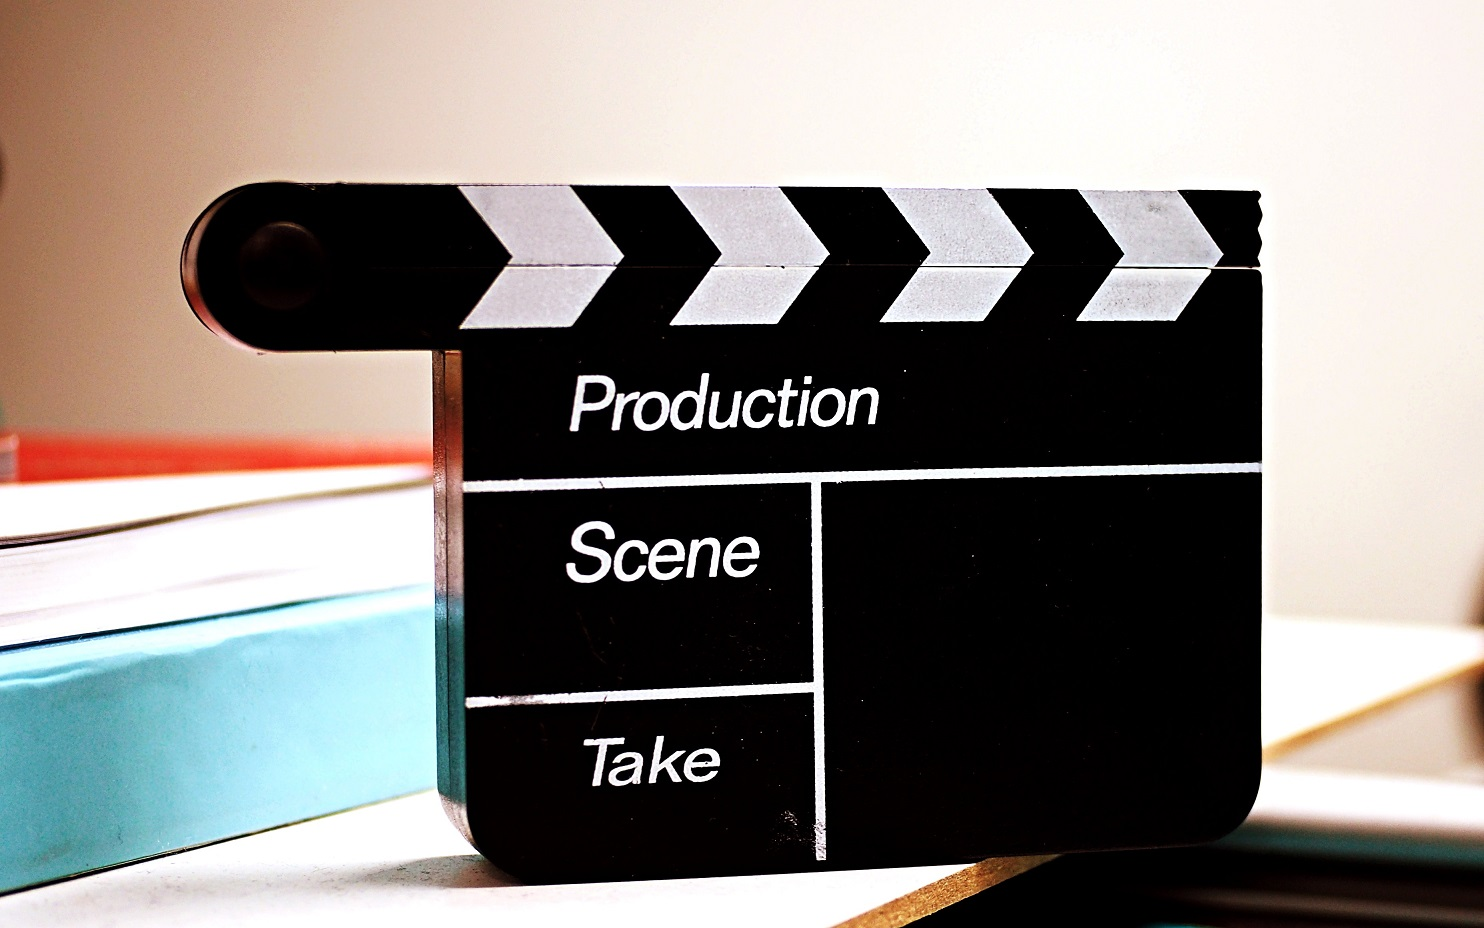 Clapperboard used for movies and television products